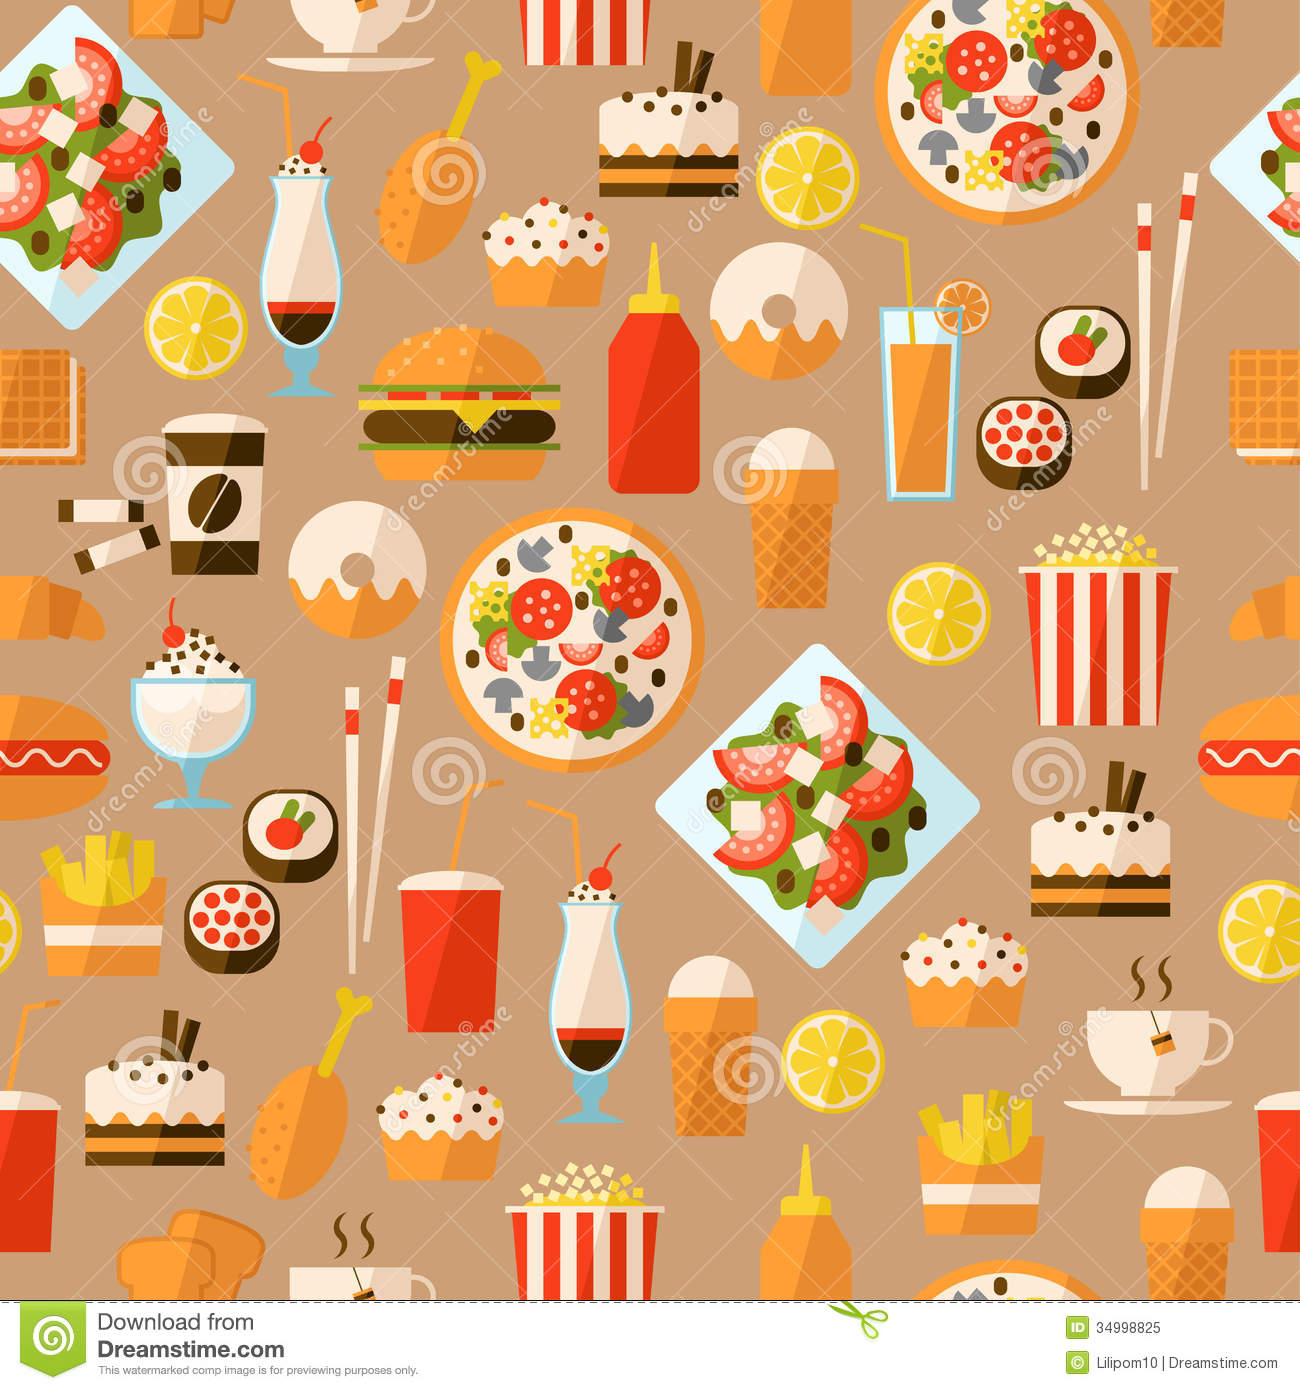 food drink fast pattern seamless interior background textiles website junk wallpapers beverage quality patterns illustration hd cartoon foods dreamstime vector